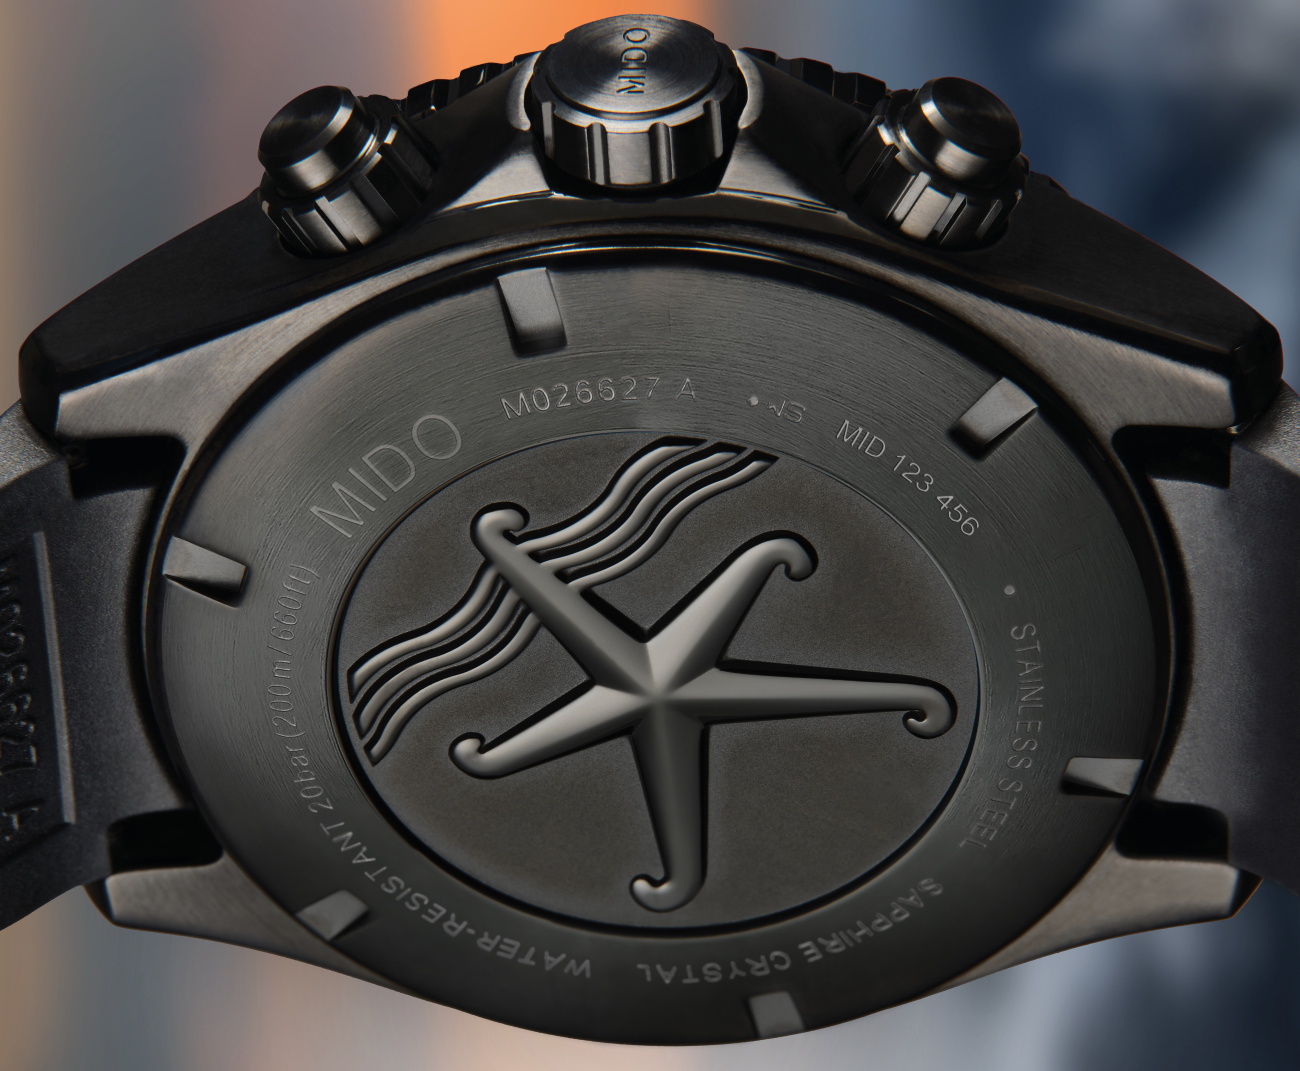 Mido_ocean_star_chronograph_back_-_europa_star_watch_magazine_2020